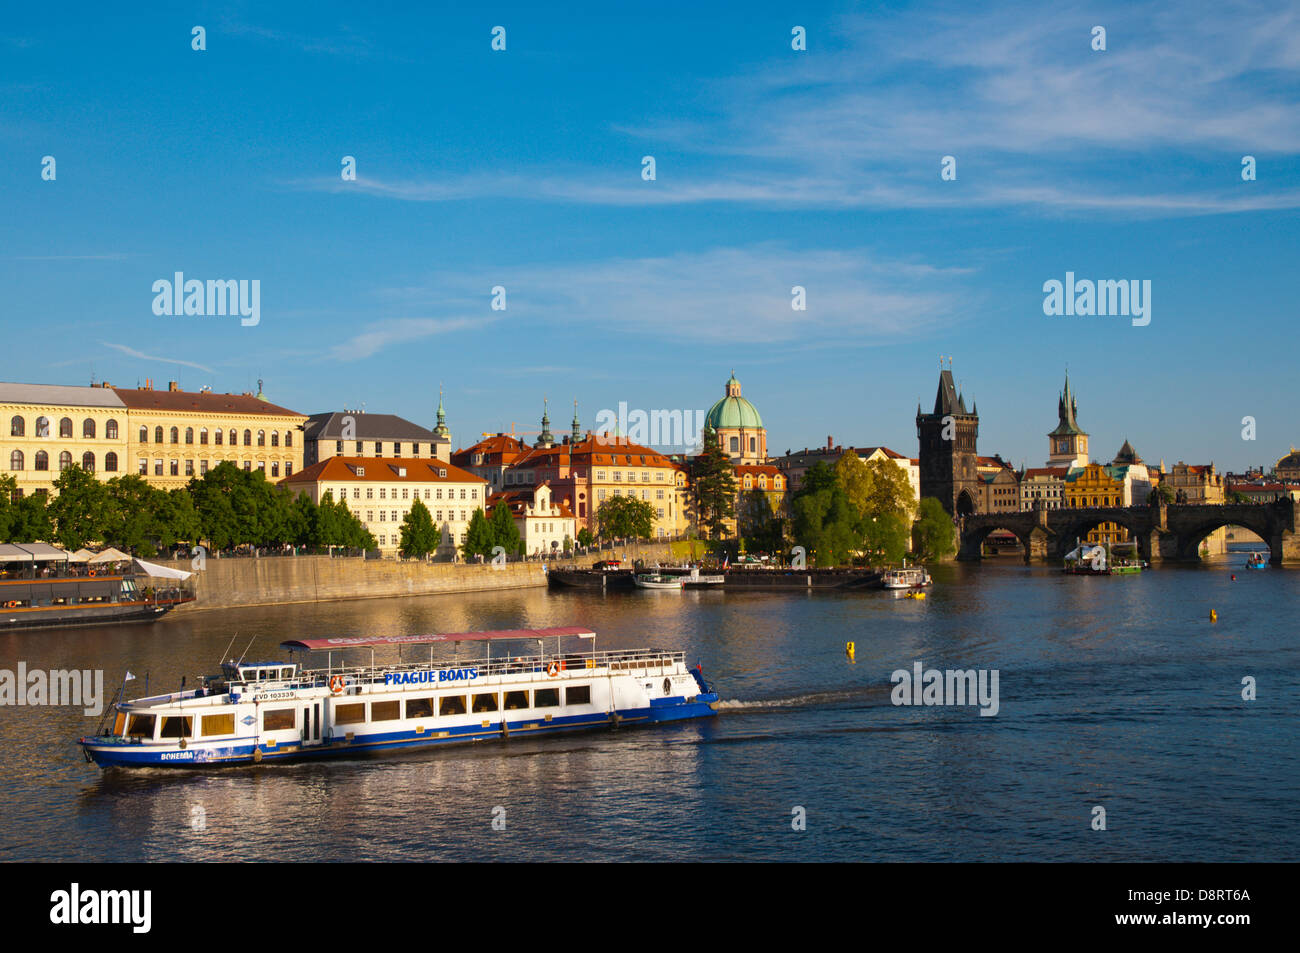 Tourist sightseeing boat on river Vltava with Charles Bridge and old town in background Prague city Czech Republic - Stock Image